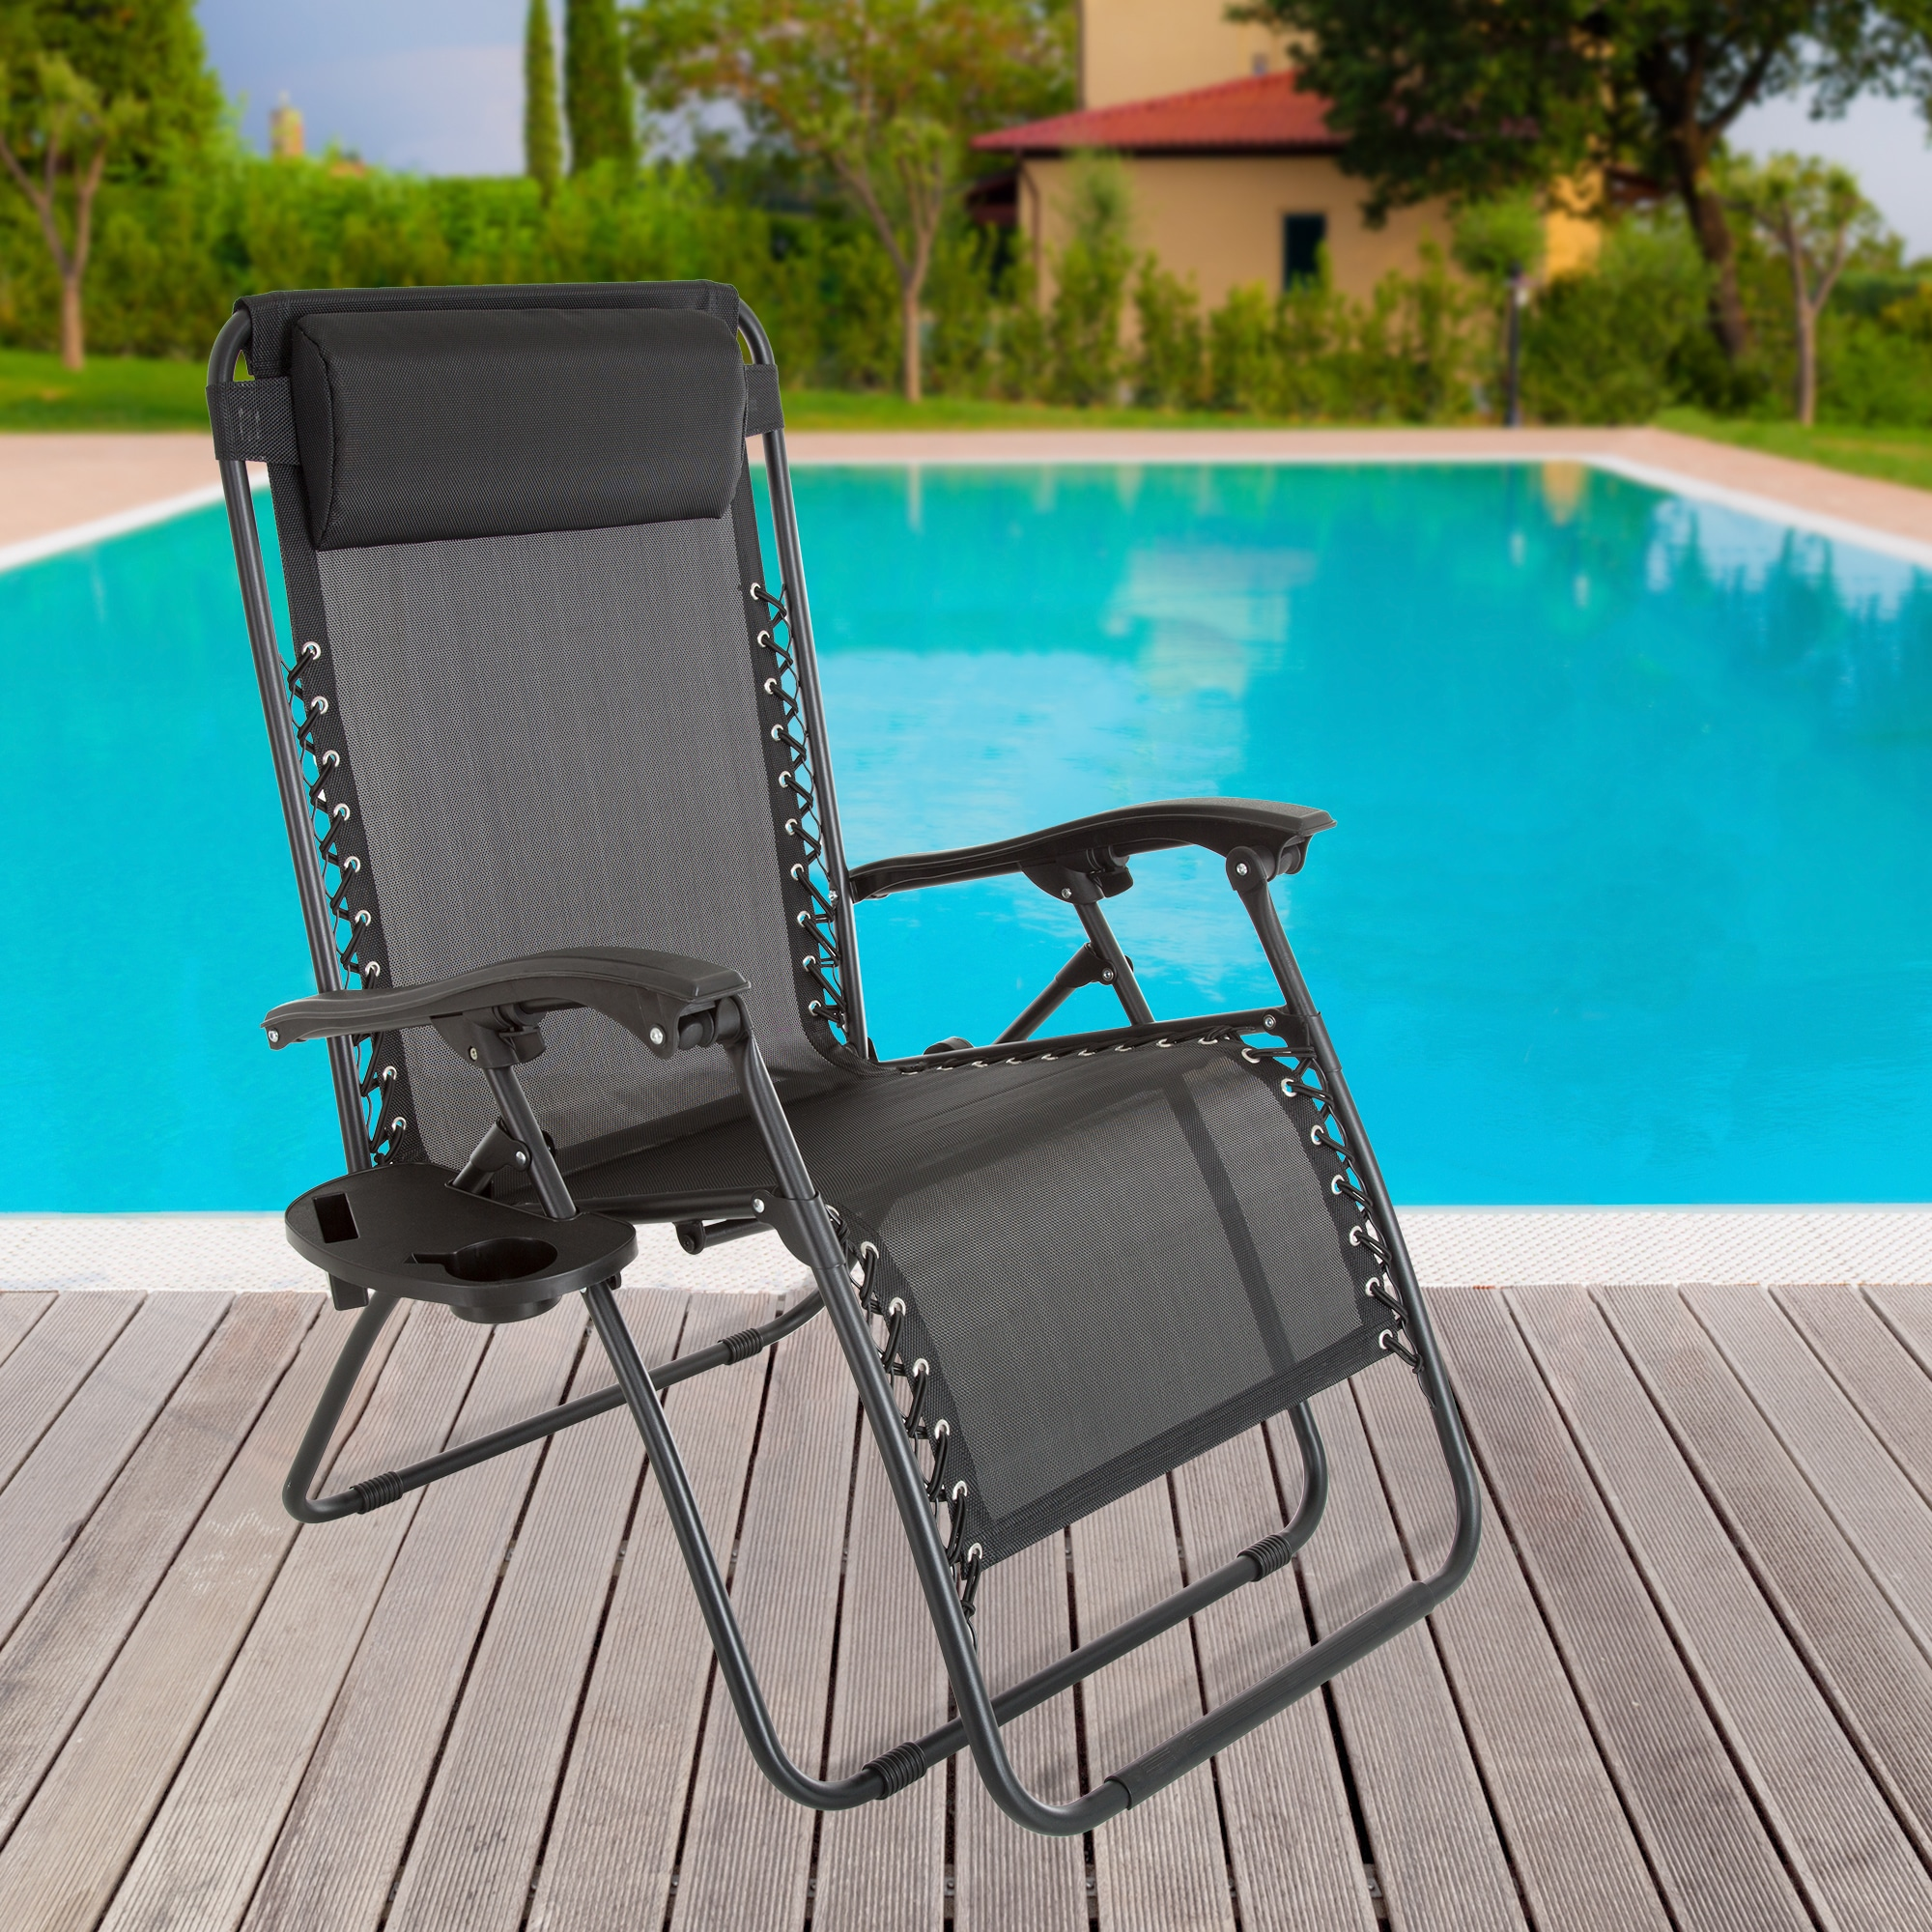 zero gravity pool chairs black hanging chair for bedroom shop outdoor reclining foldable lounge with pillow headrest and cup holder pure garden on sale free shipping today overstock com